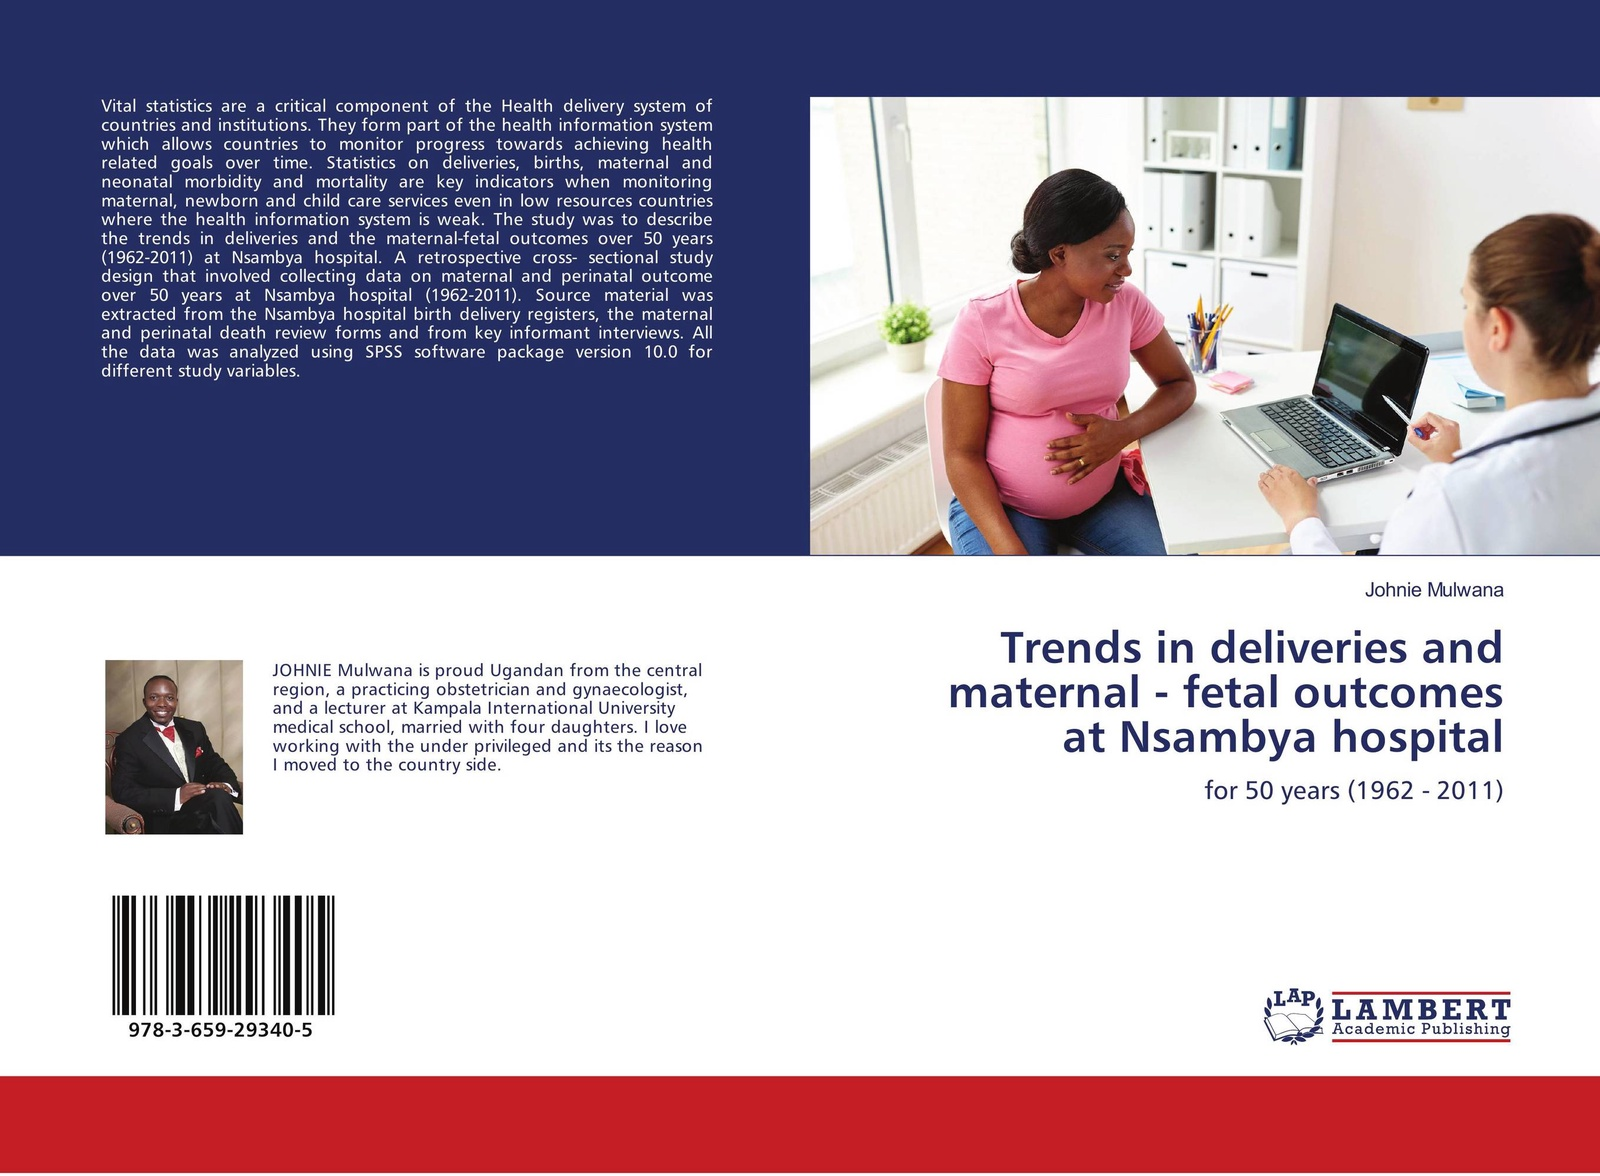 Johnie Mulwana Trends in deliveries and maternal - fetal outcomes at Nsambya hospital maternal correlates of low birth weight deliveries